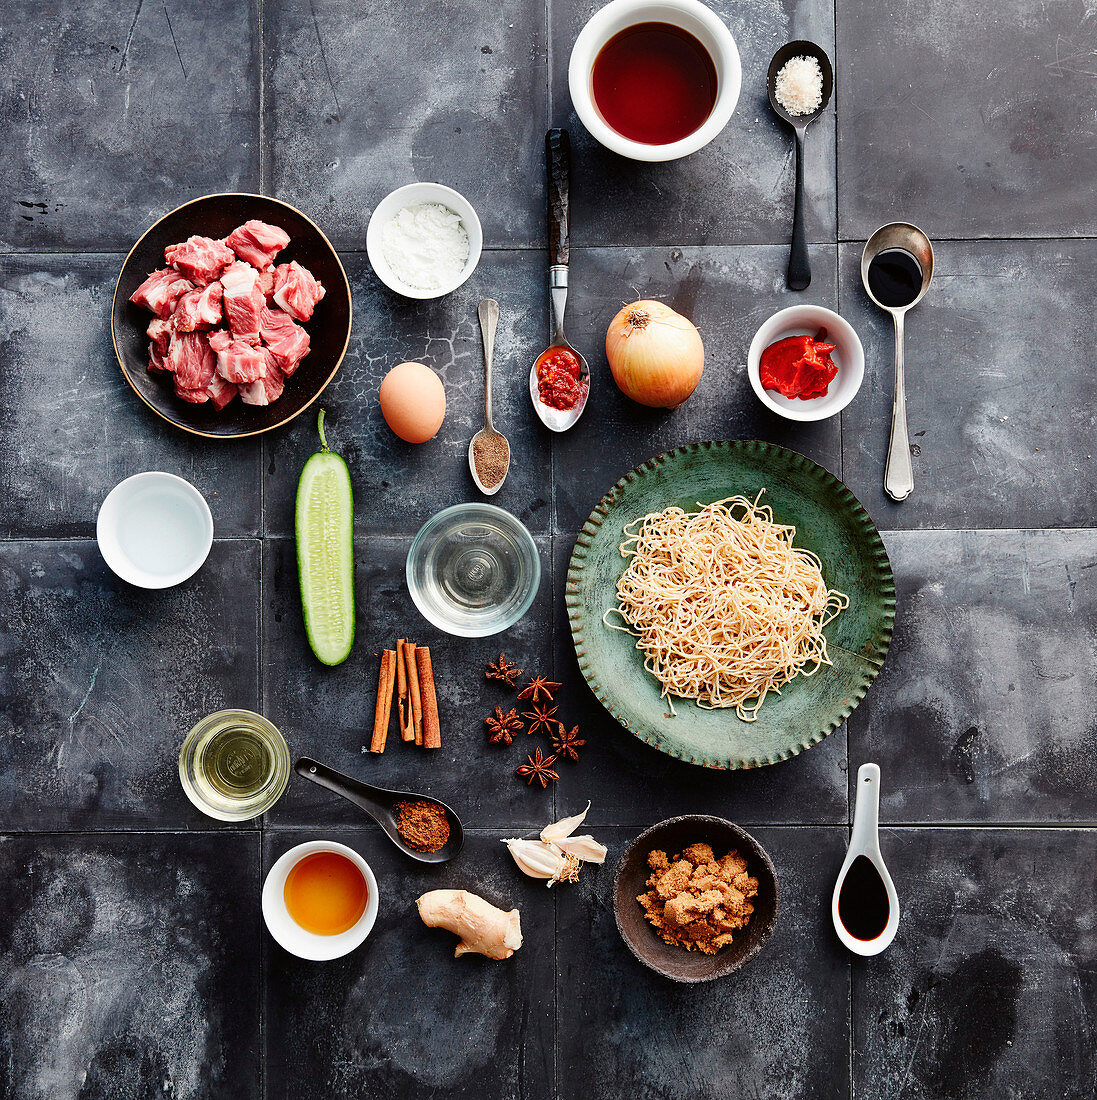 Ingredients for Red Braised Lamb Bowl